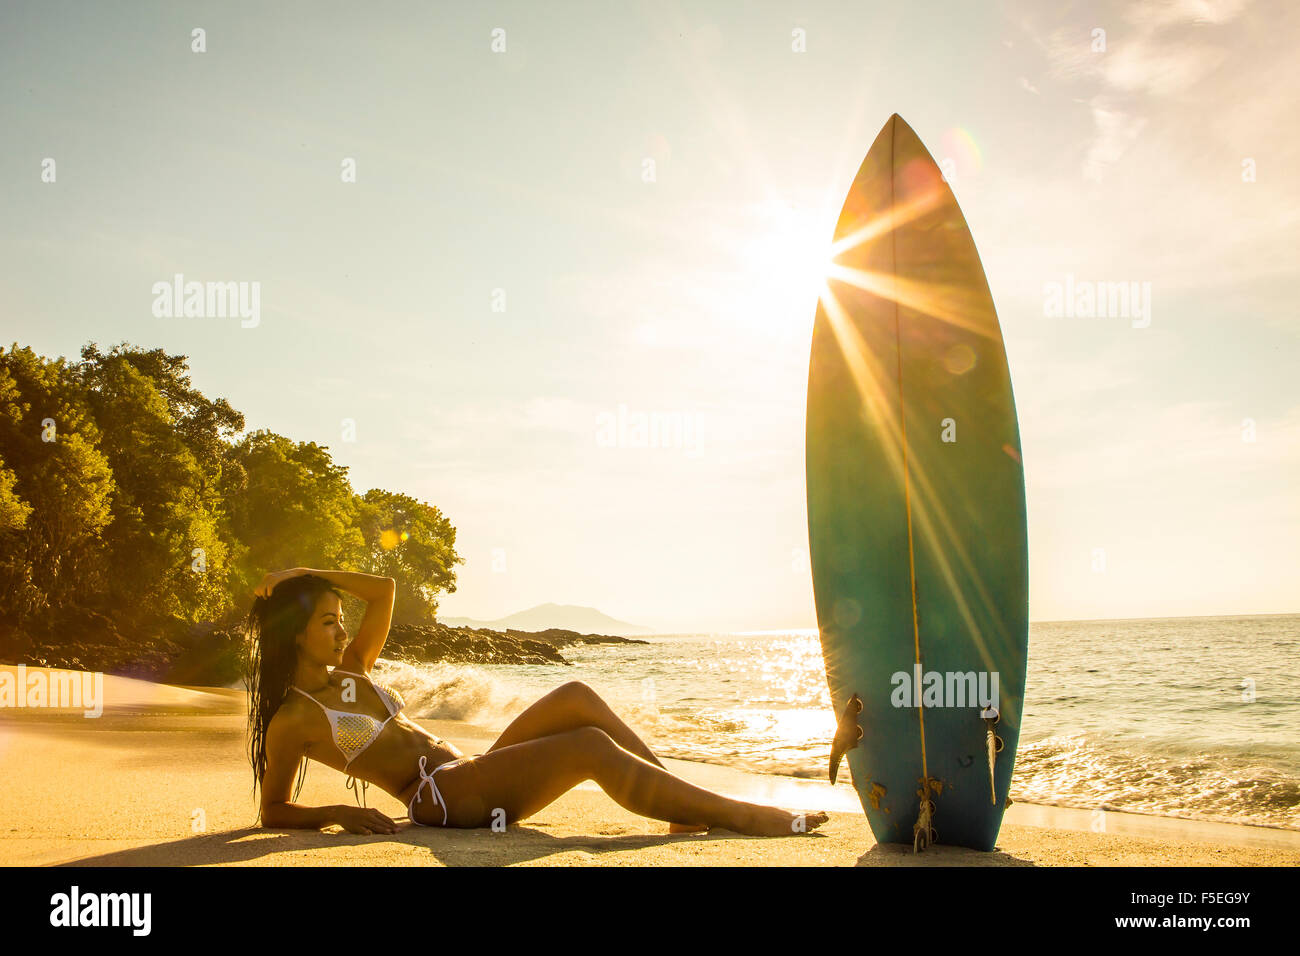 Woman lying on the beach with a surfboard, Bali, Indonesia - Stock Image